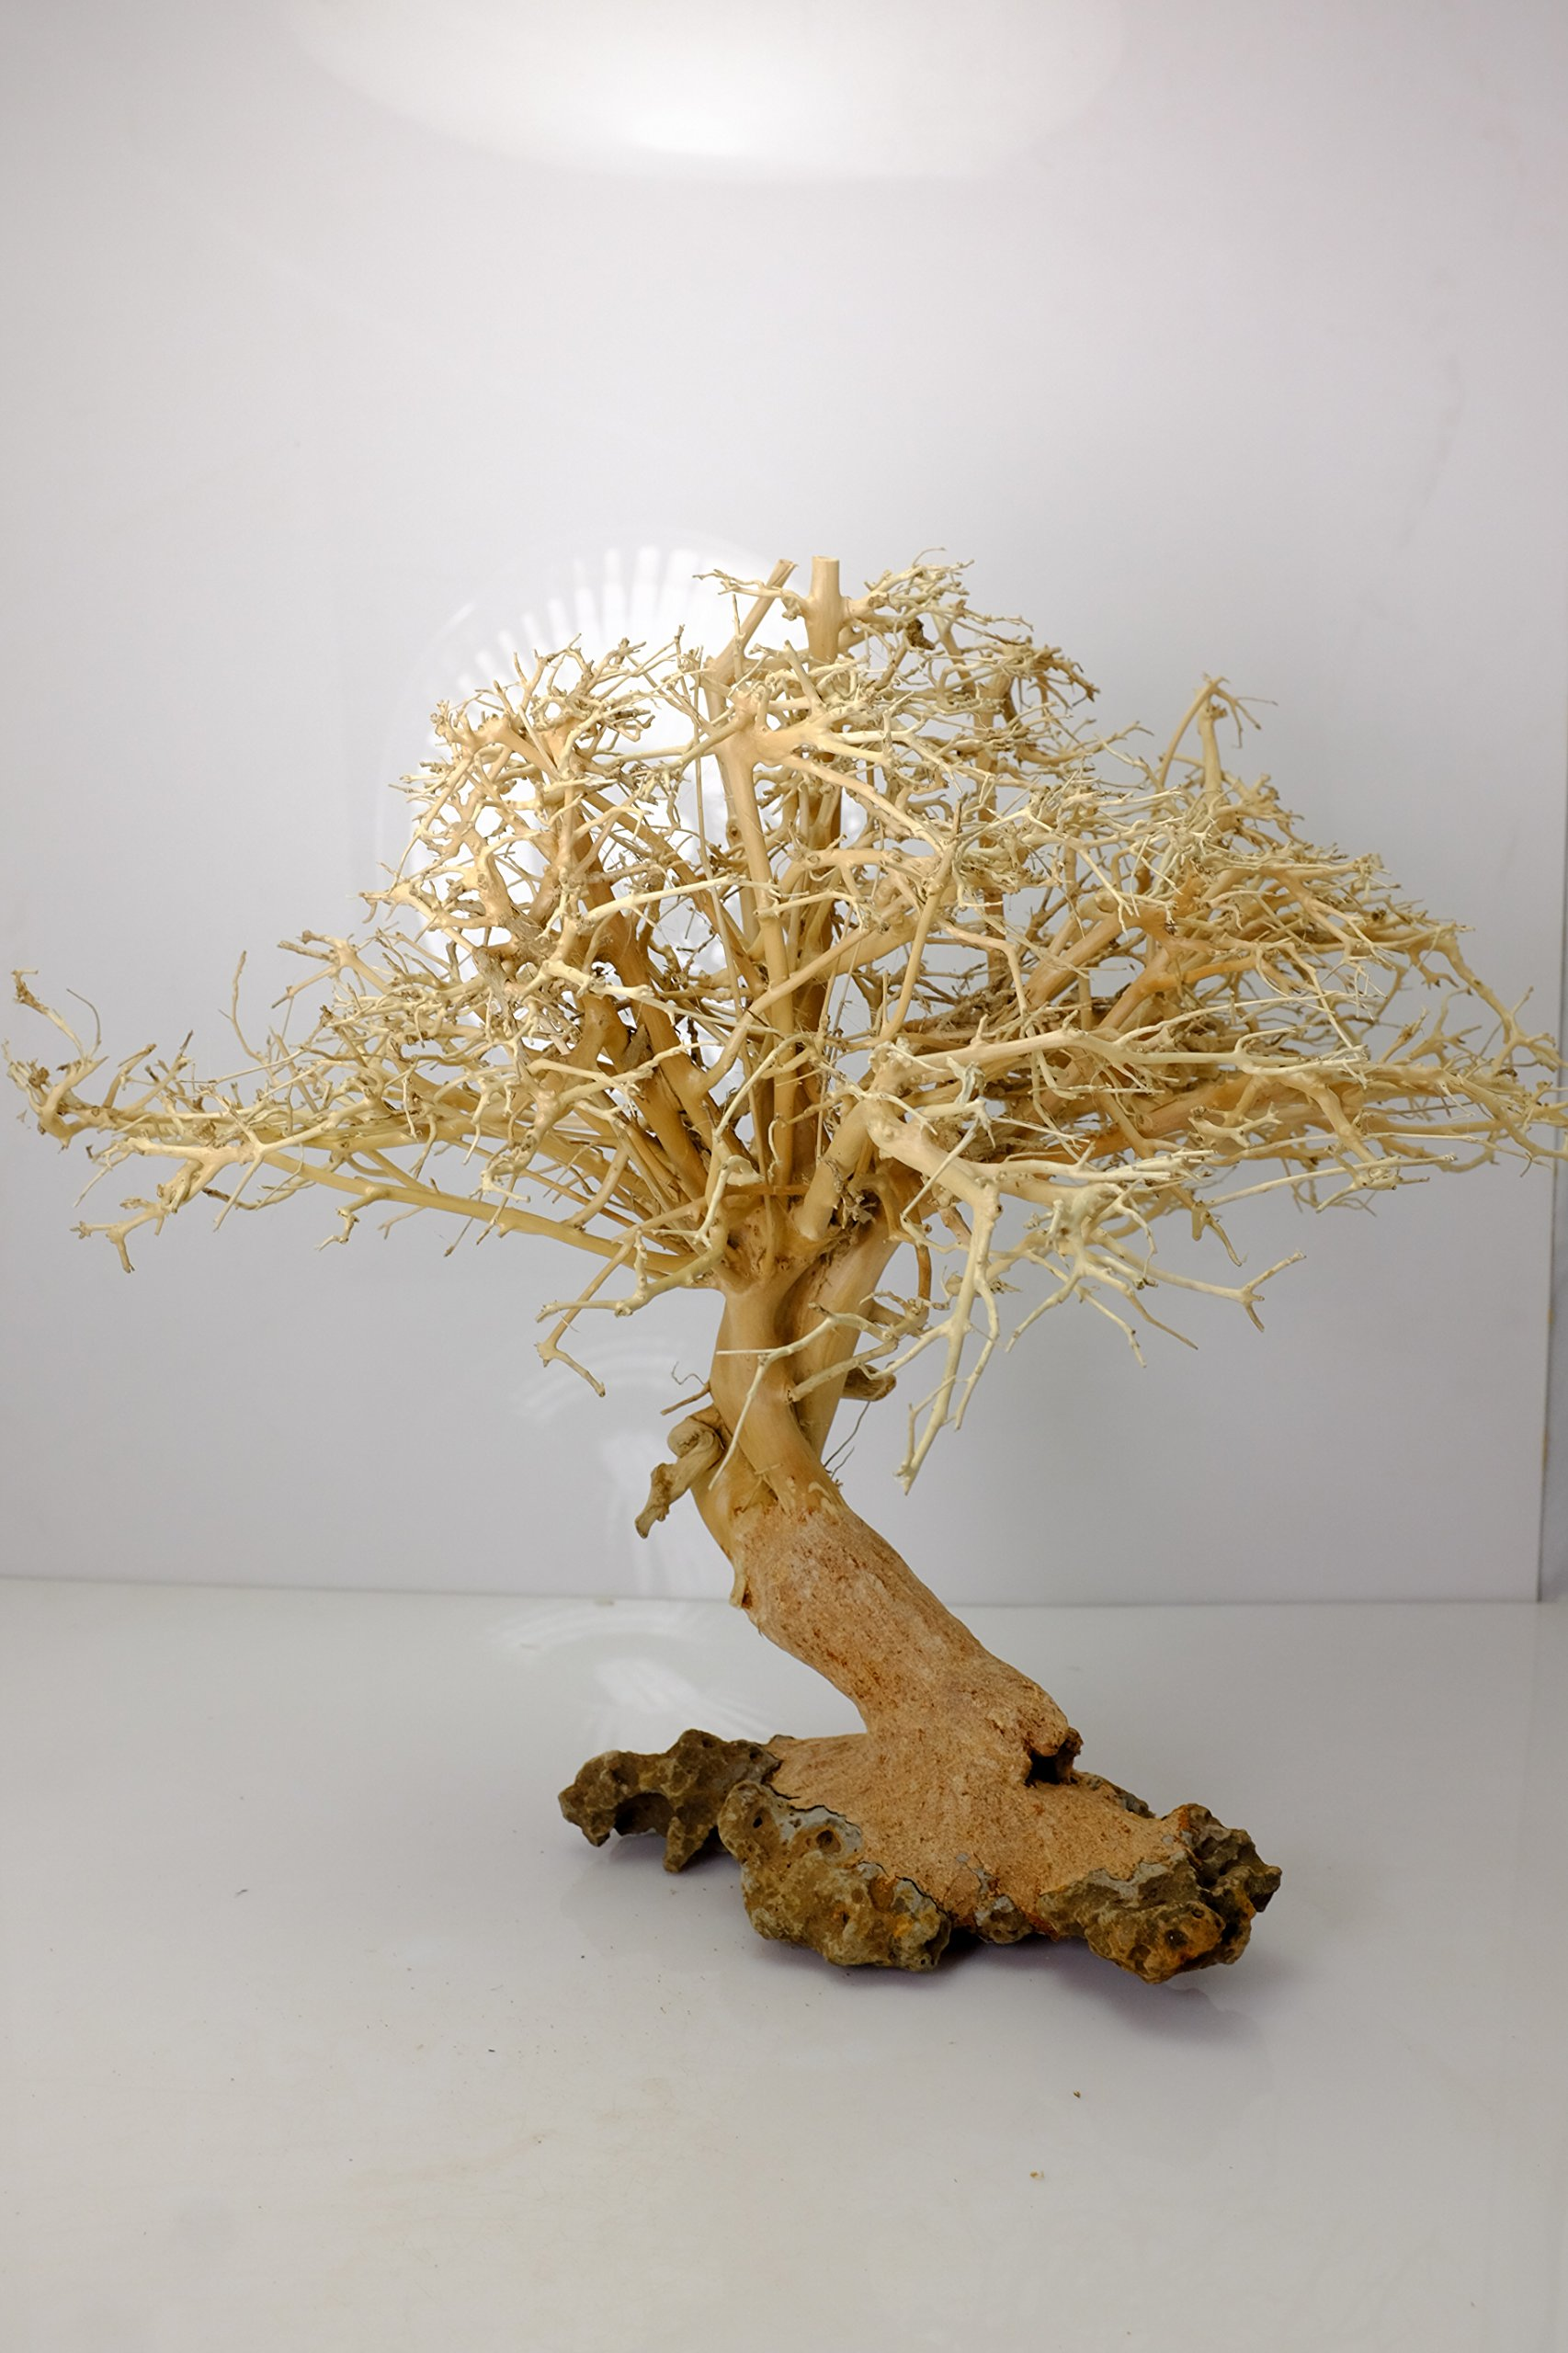 Bonsai Driftwood Aquarium Tree (12 Inch height) Natural, Handcrafted Fish Tank Decoration   Helps Balance Water pH Levels, Stabilizes Environments   Easy to Install by Bonsai Driftwood